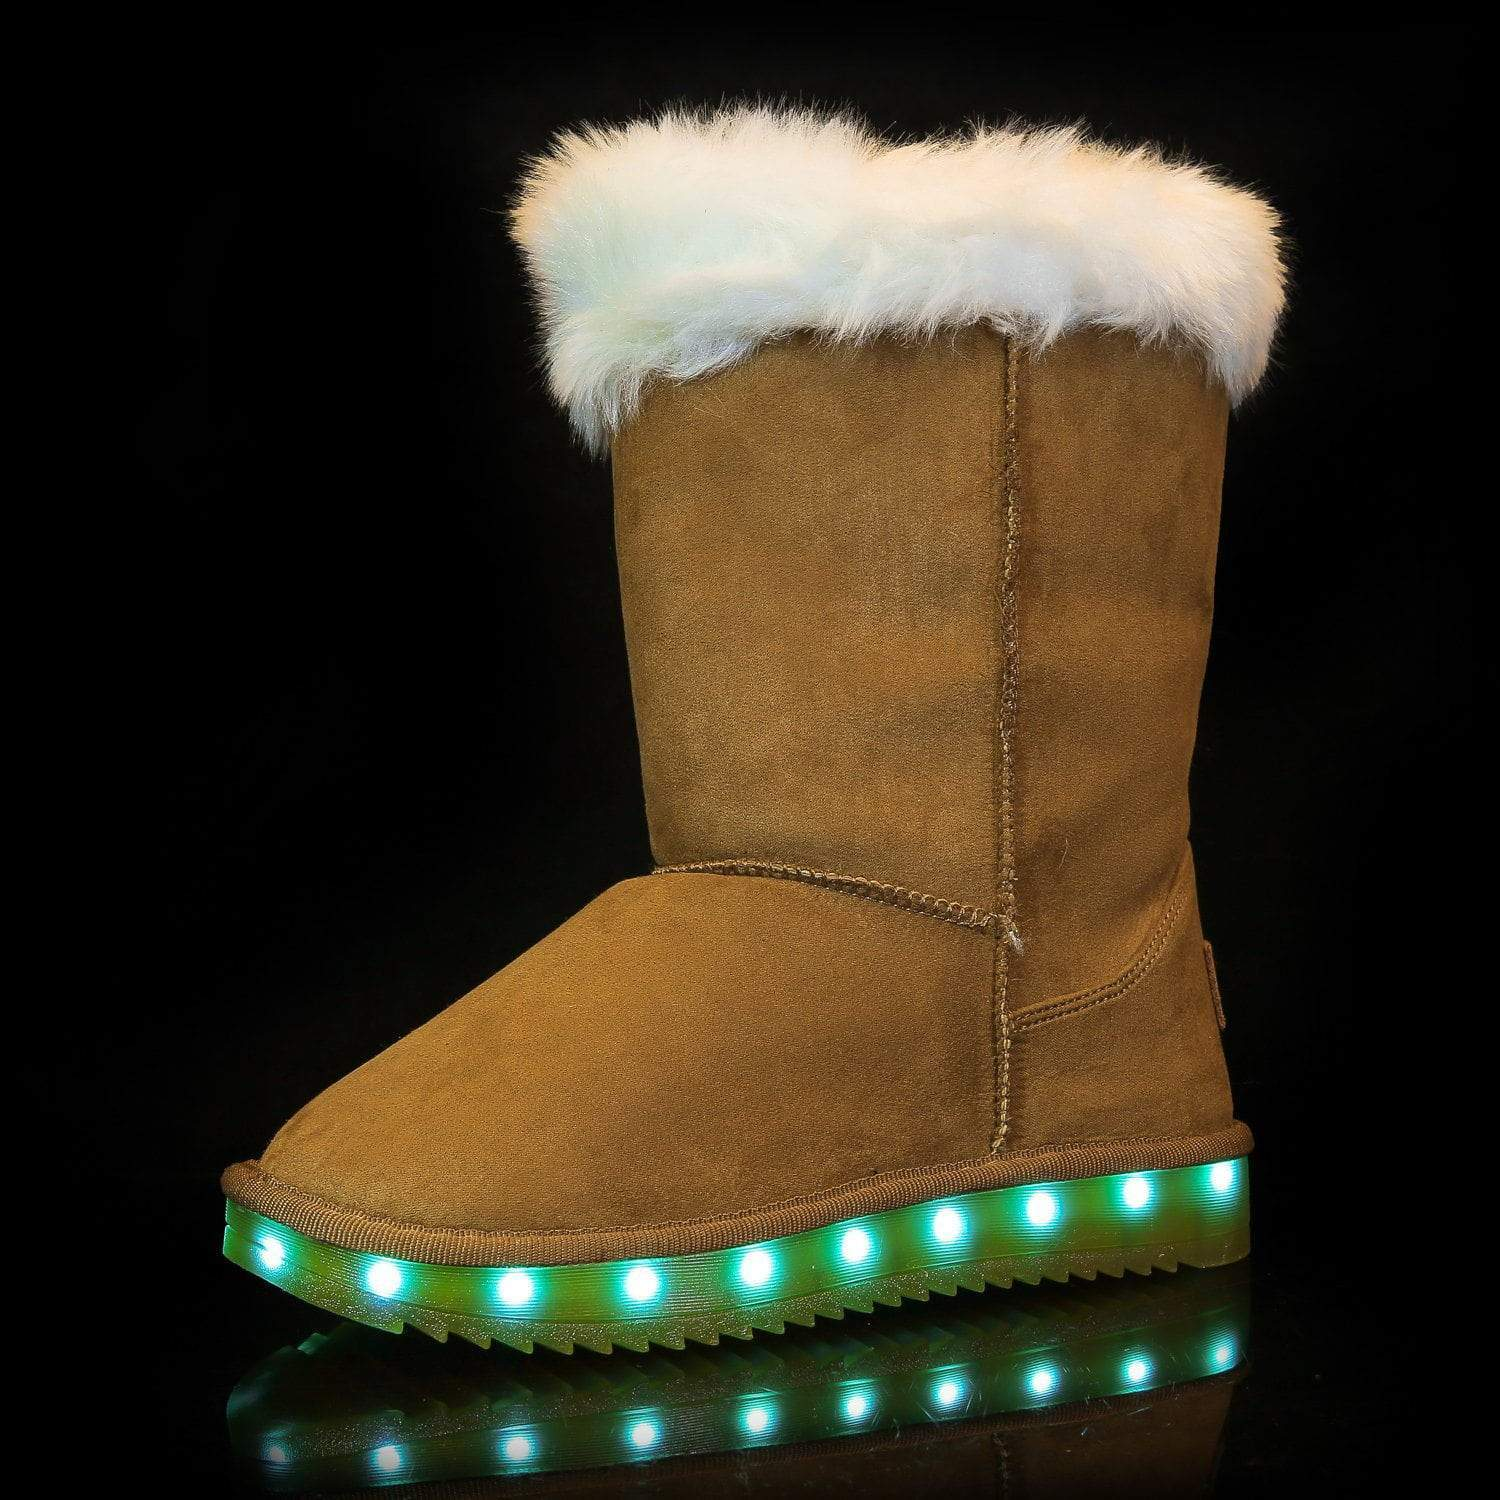 Flashez LED Footwear - Flash Wear LED Chestnut Calf Boots